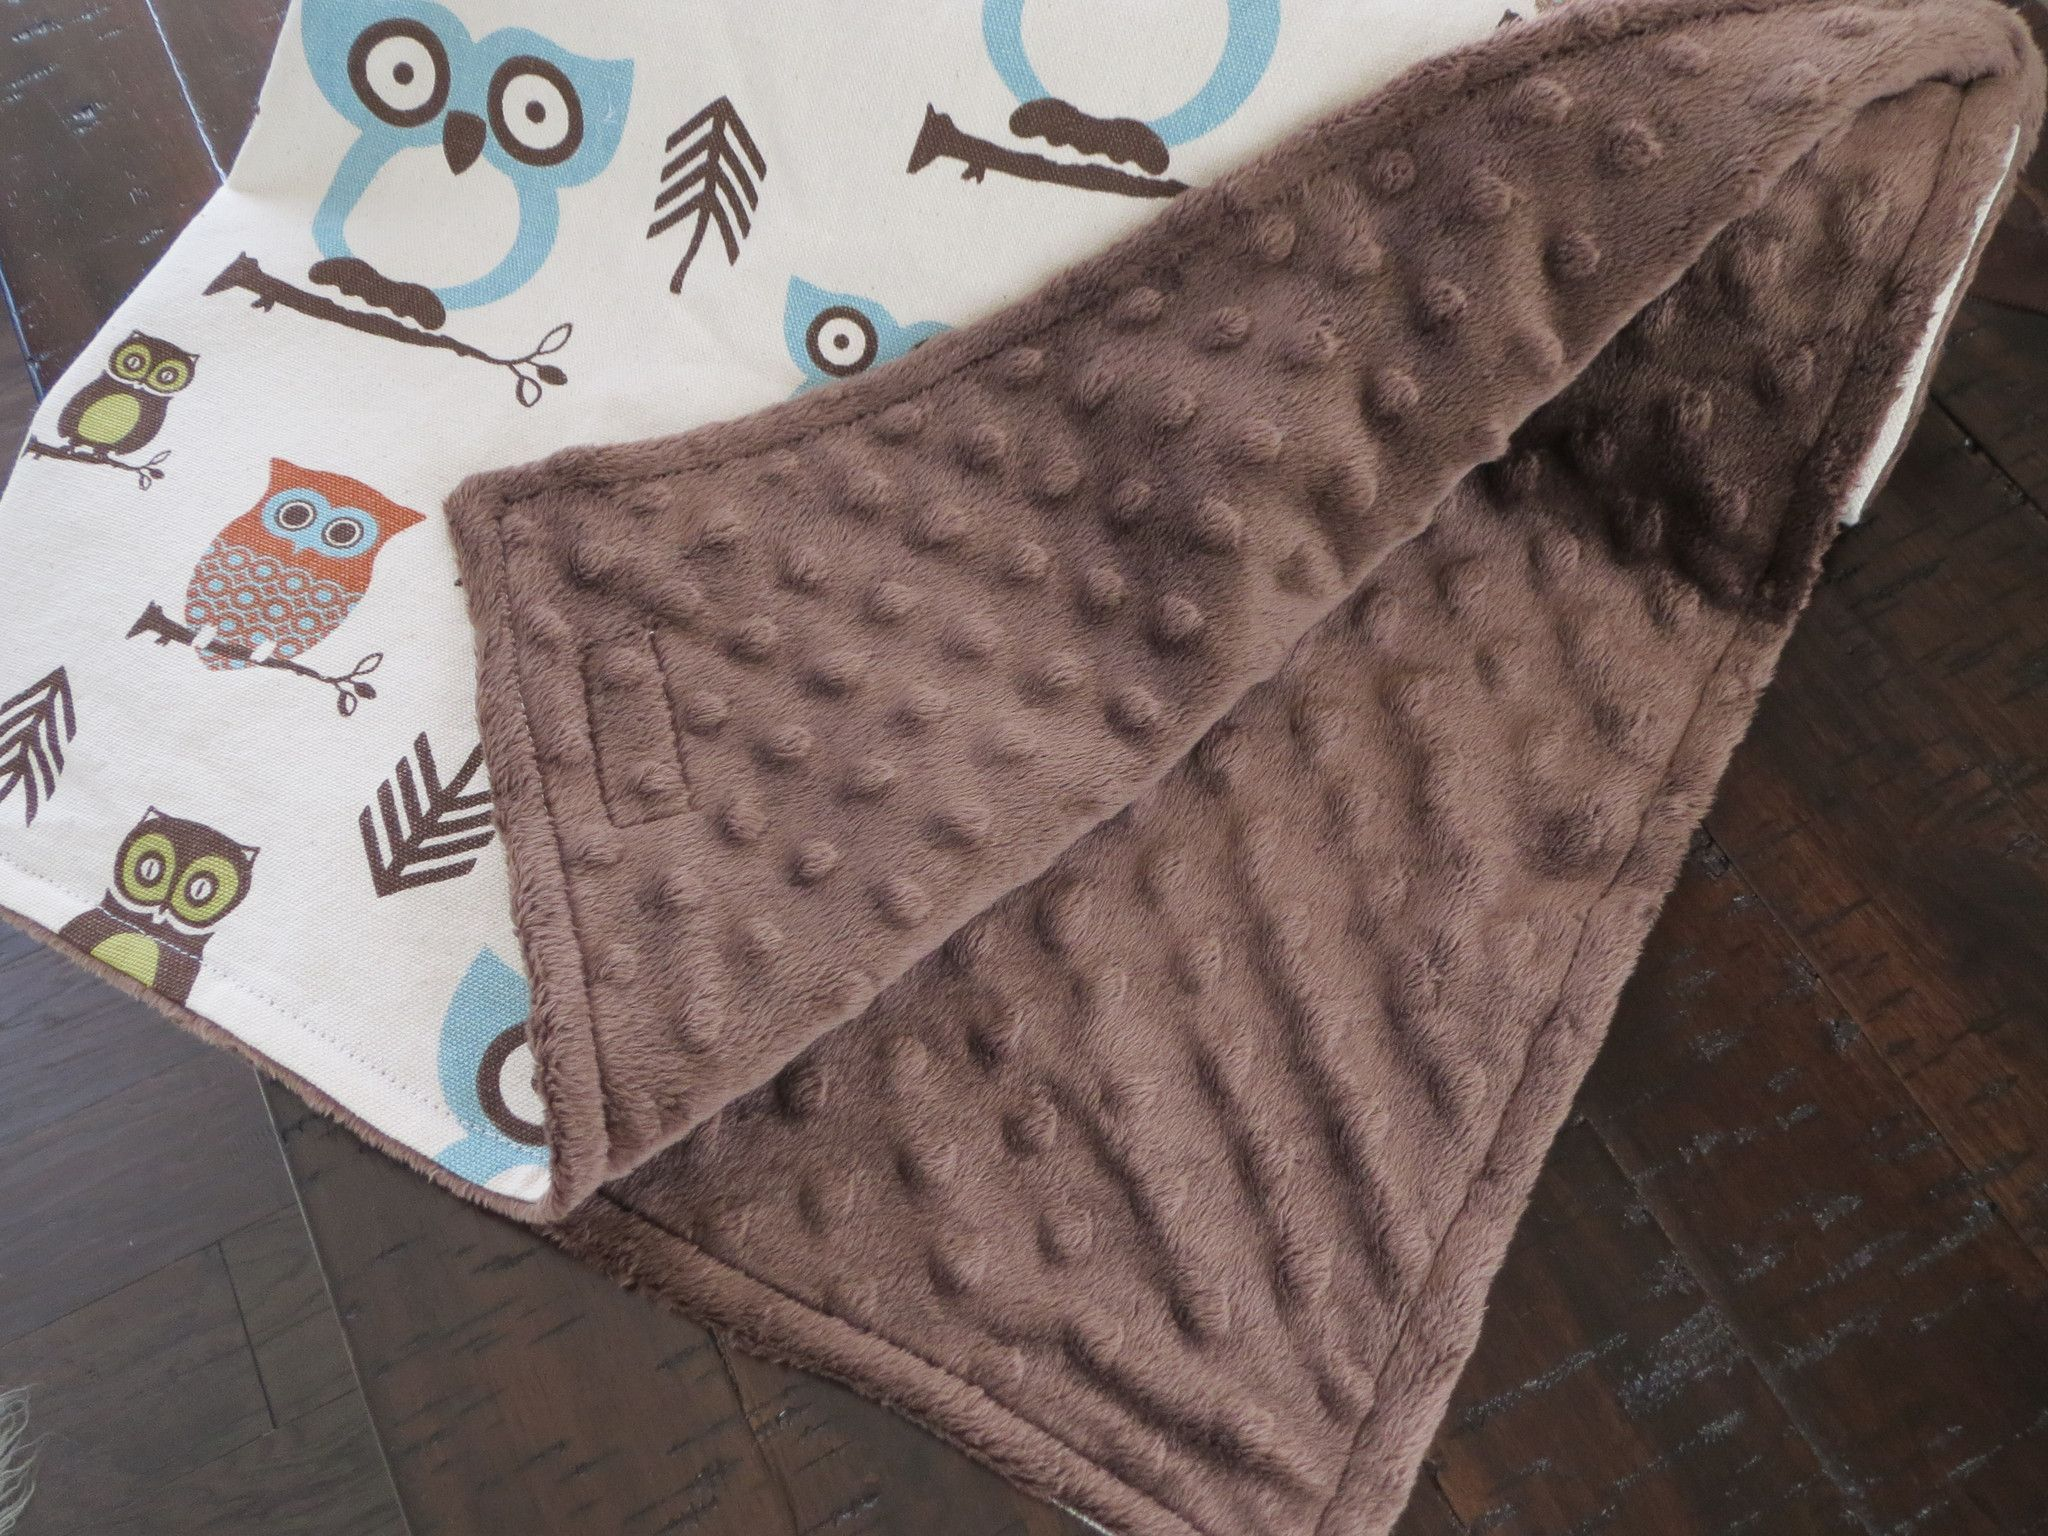 Baby Boy Is Sure To Snuggle With This Owl Baby Blanket For Years To Come